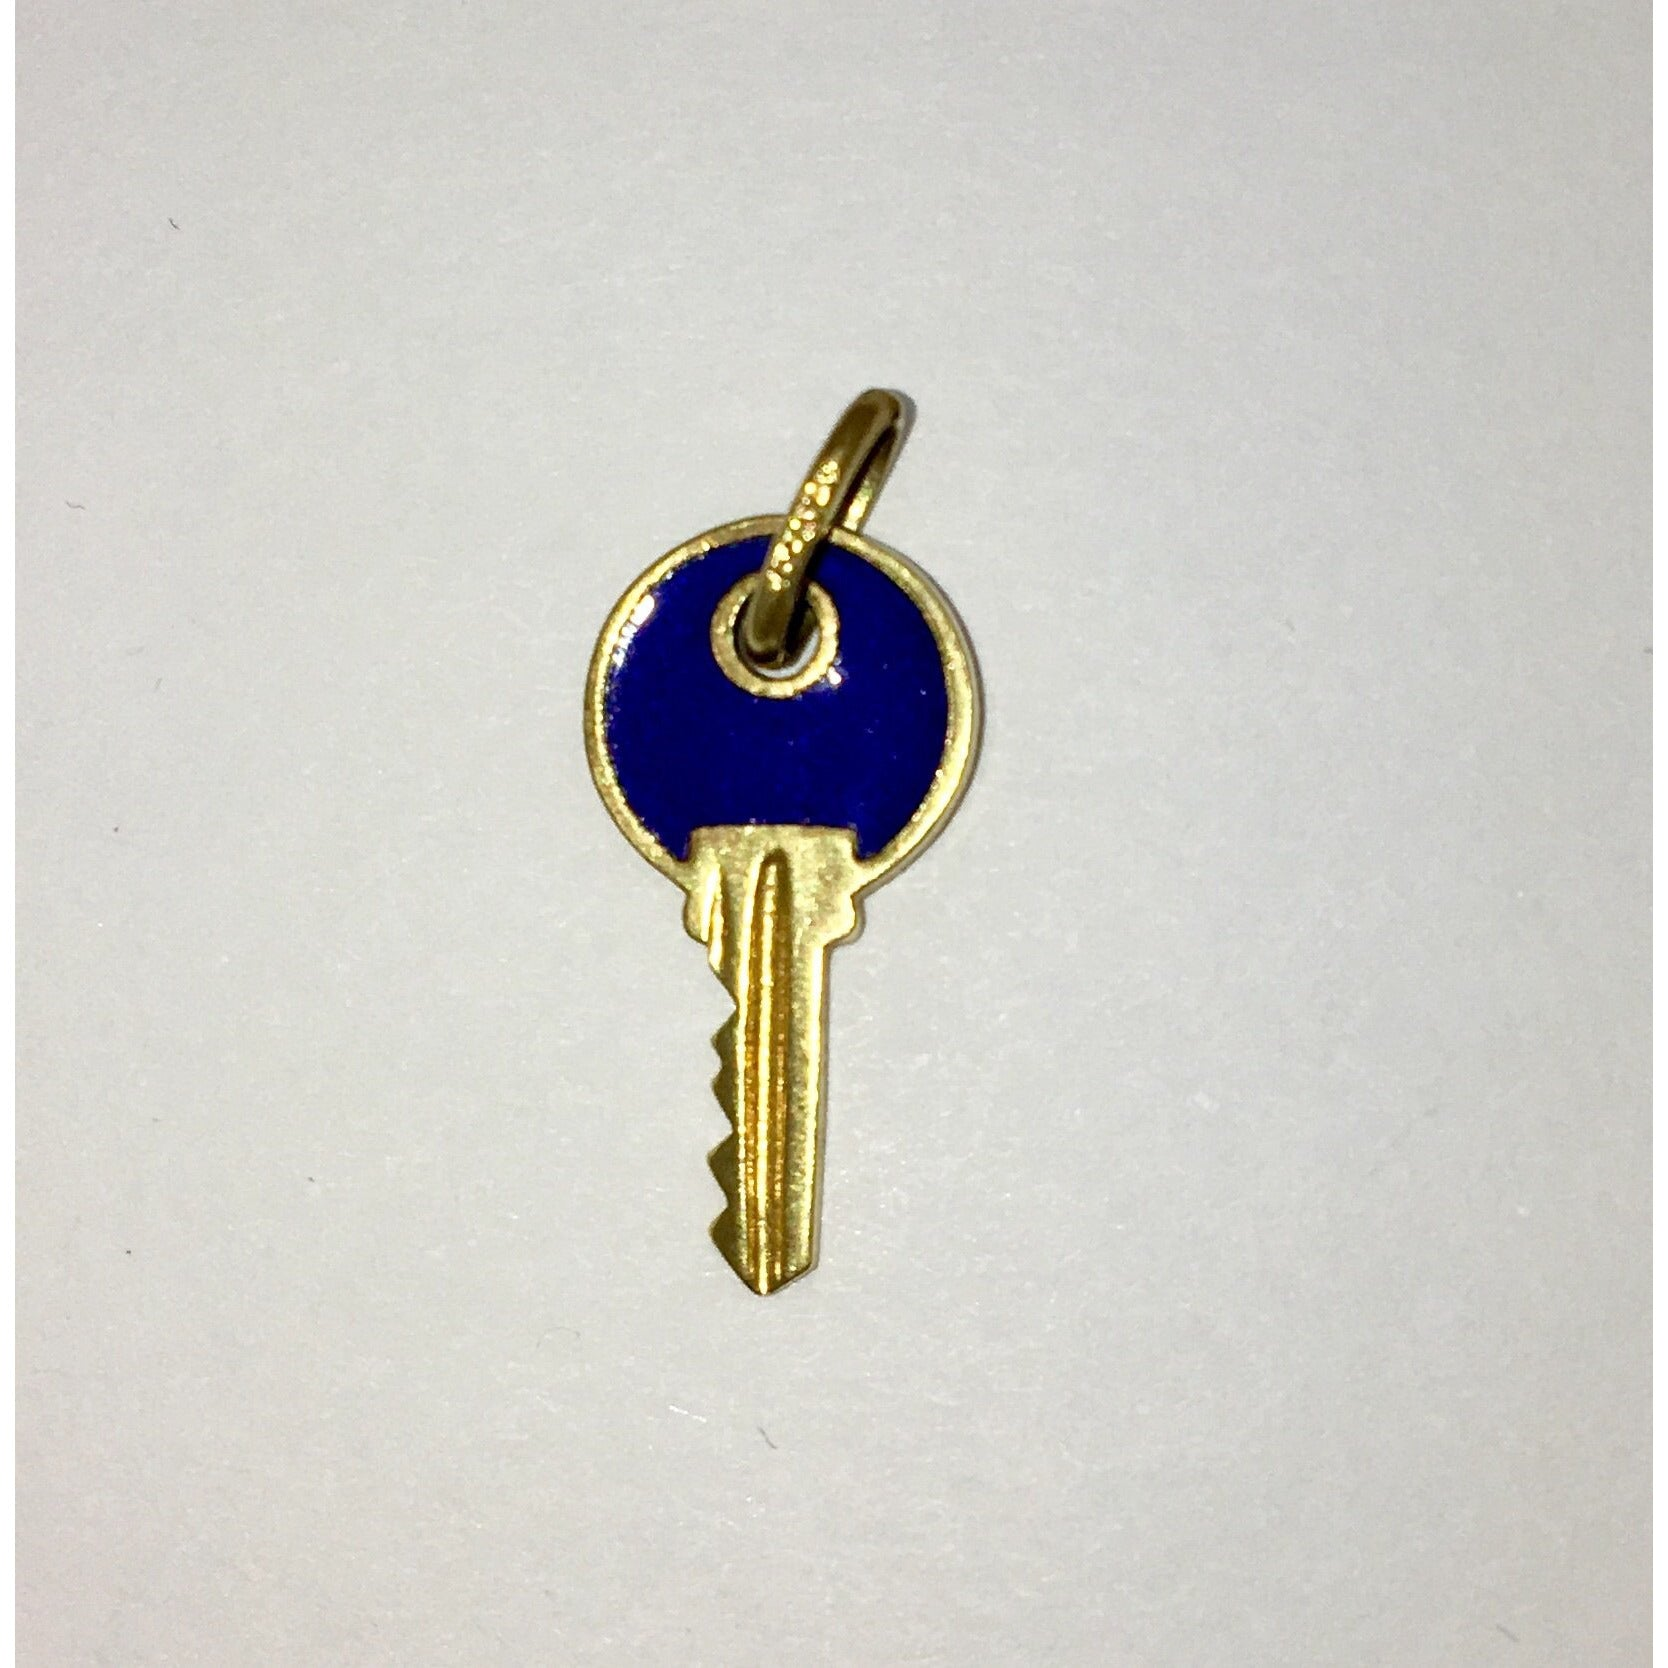 CHARJ011 14K Yellow Gold Reversible Multi-Colored Key Charm